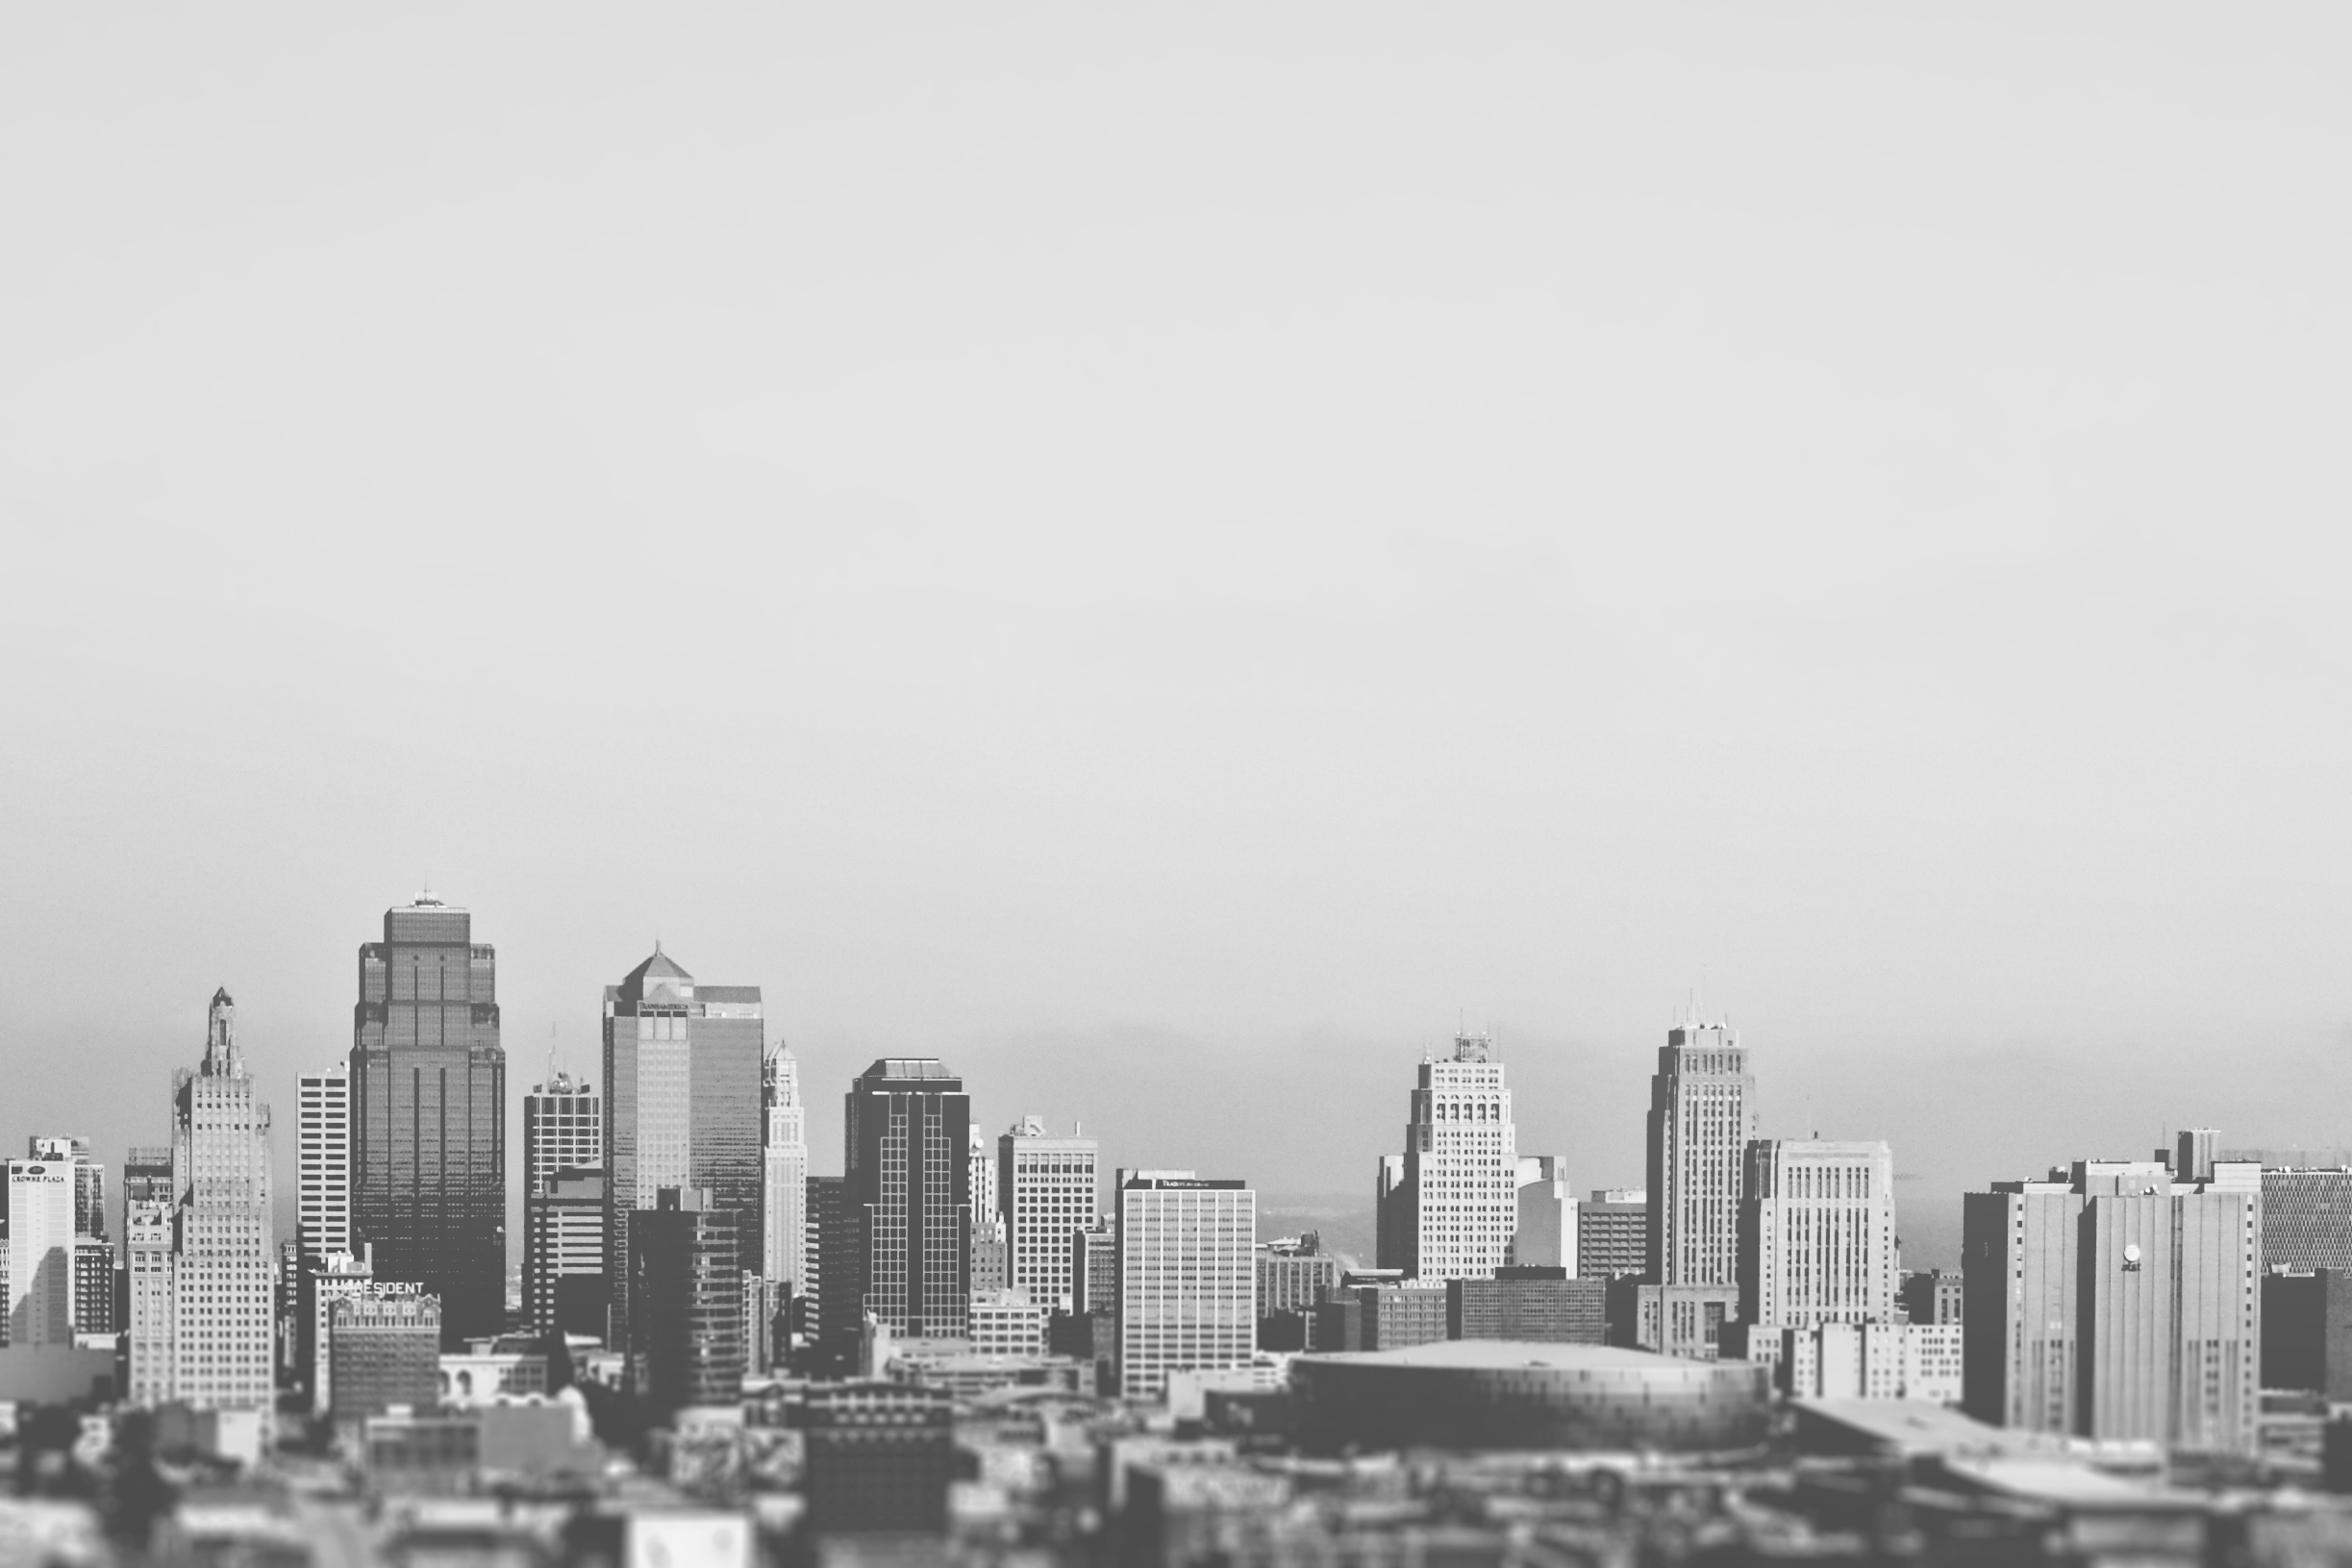 A view of the city's skyline